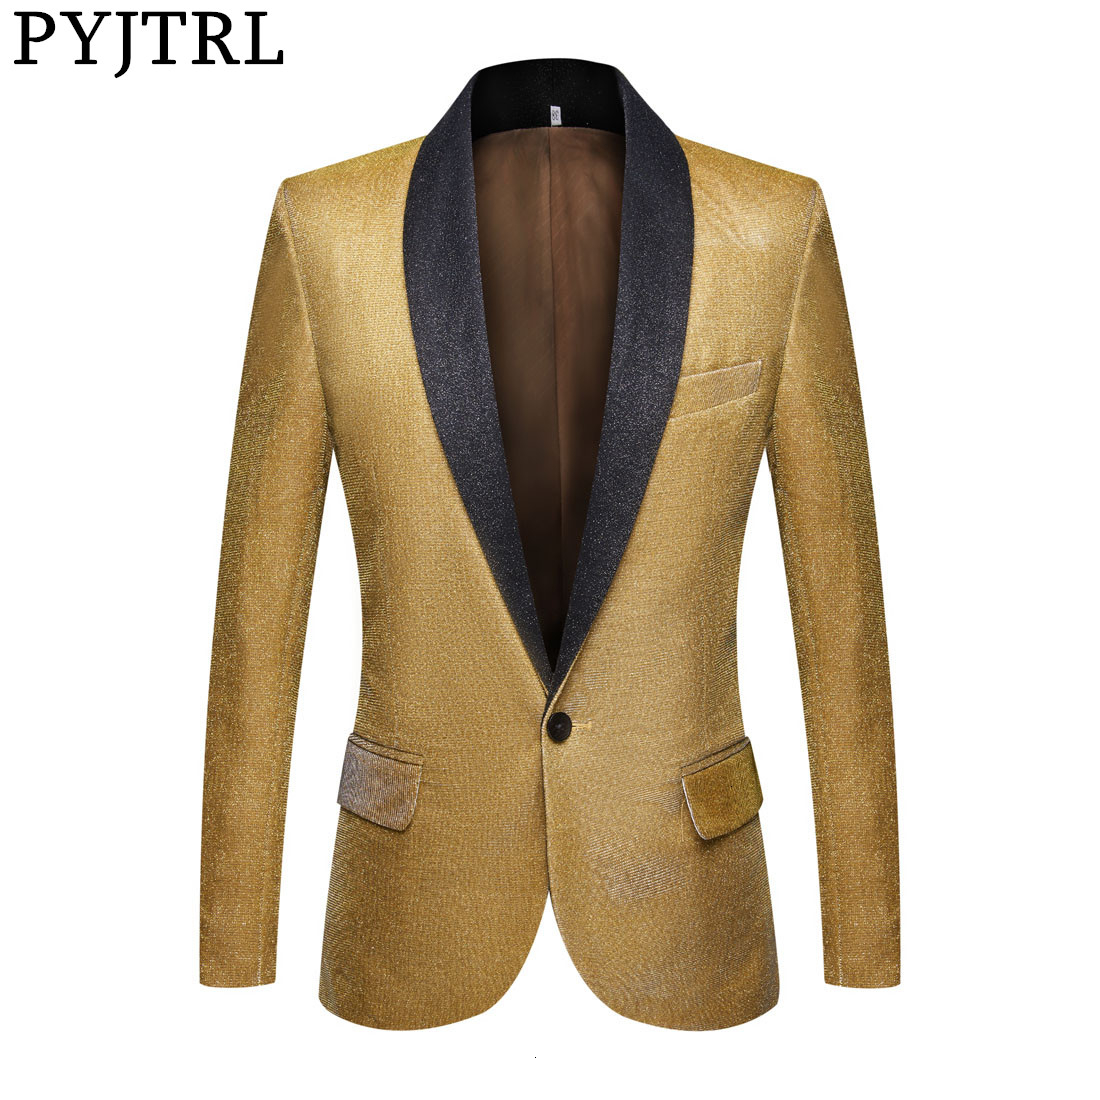 PYJTRL Mens Fashion Fantasy Color Shiny Gold Blue Purple Green Blazers Wedding Grooms Prom Dress Suit Jacket DJ Singers Costume